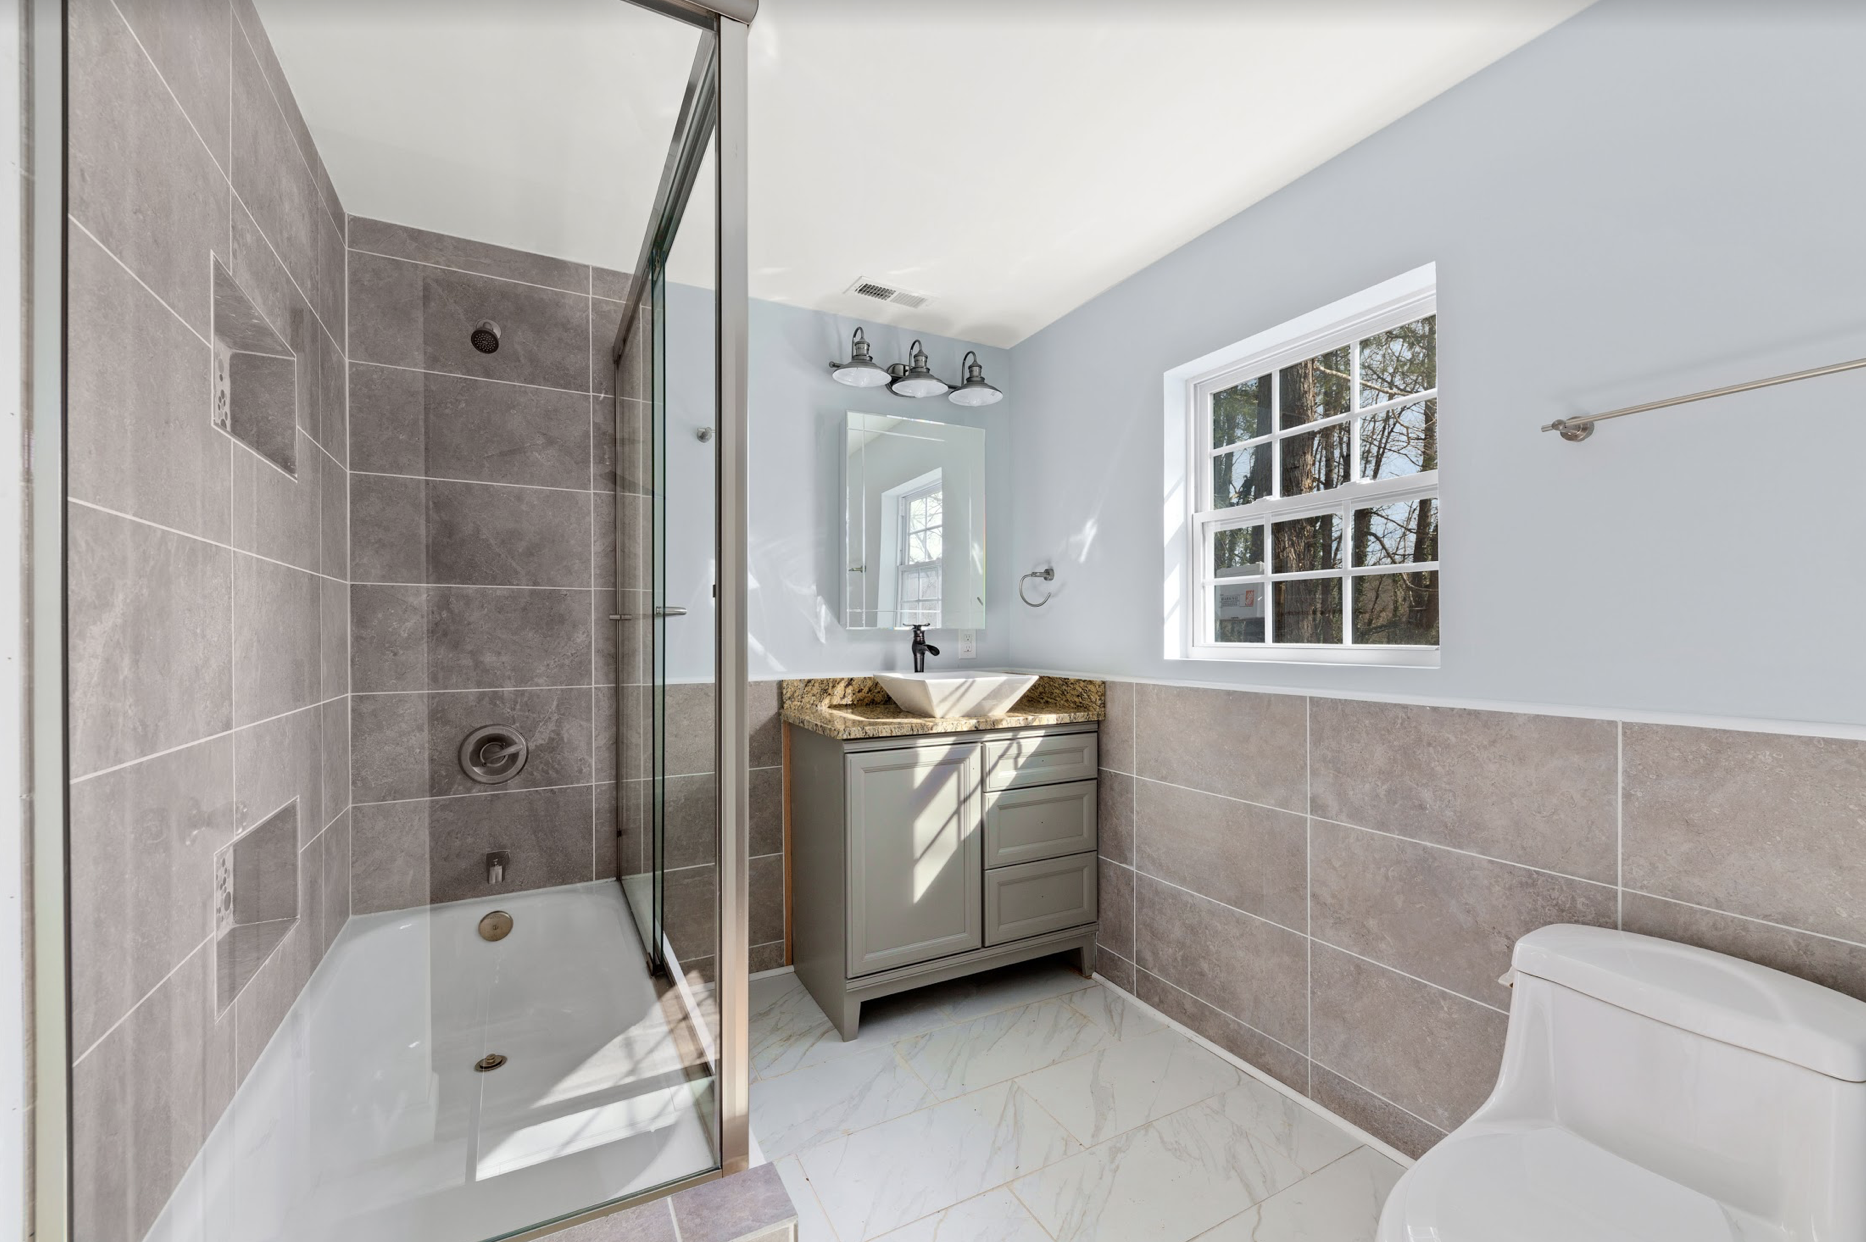 A newly-renovated bathroom in Julian's recently-completed real estate project.